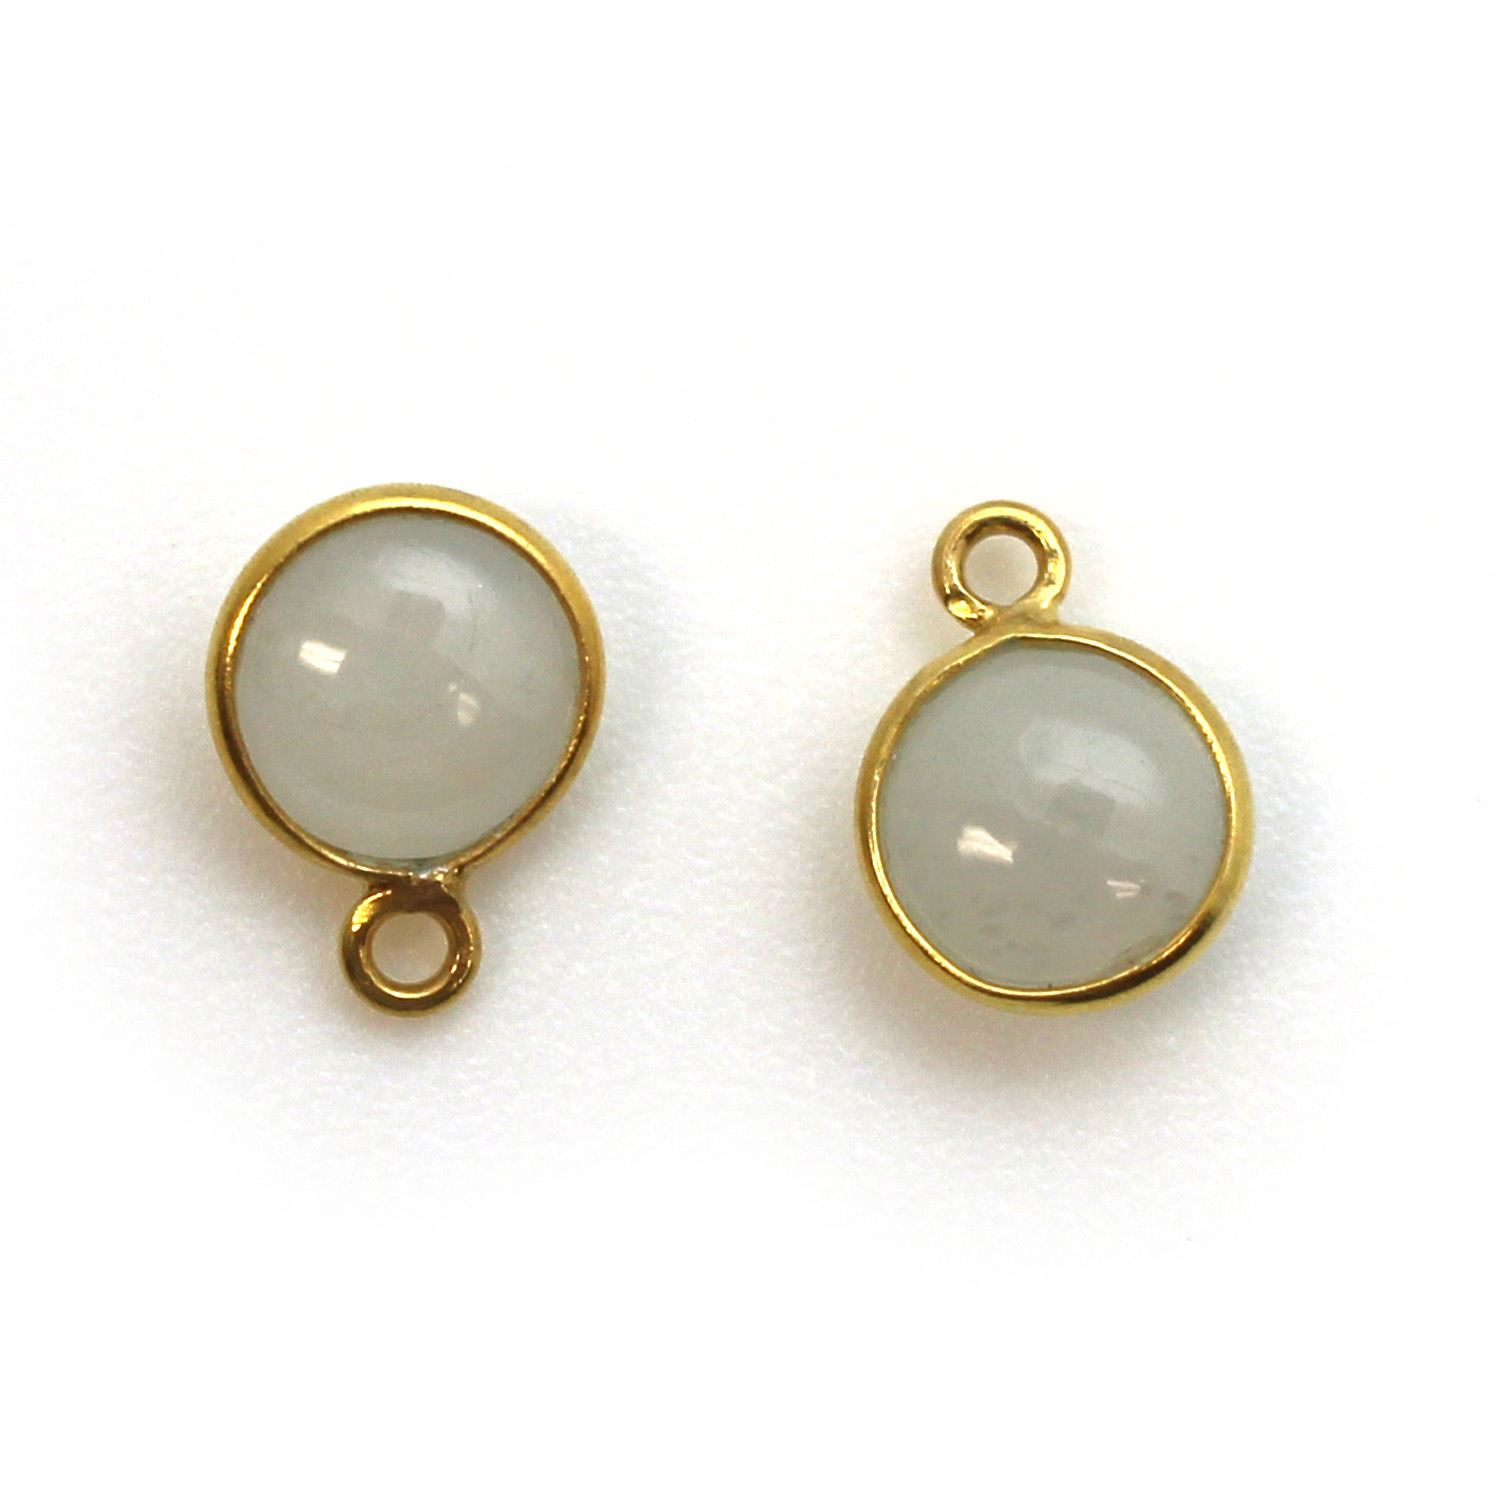 Bezel Charm Pendant - Gold Plated Sterling Silver Charm - Natural Moonstone -Tiny Round Shape